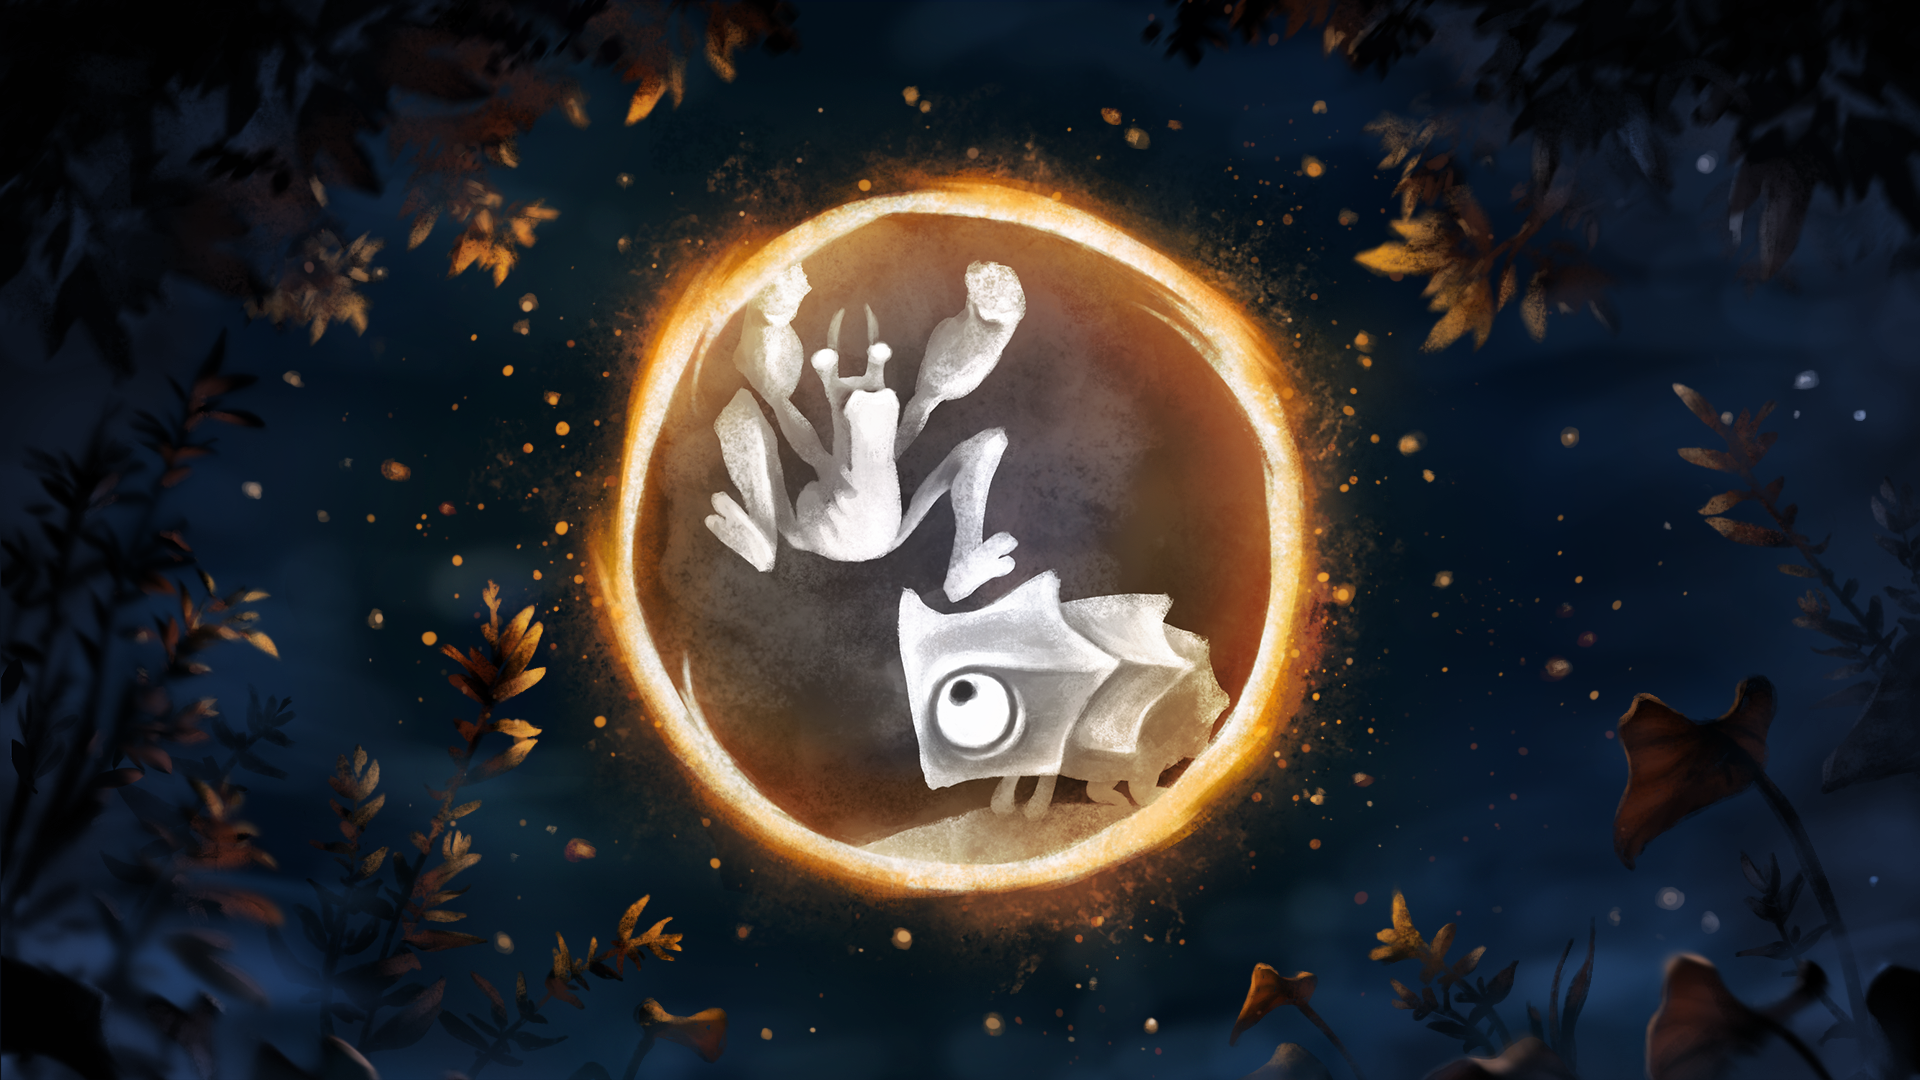 Deadly Dash achievement for Ori and the Blind Forest on Nintendo Switch